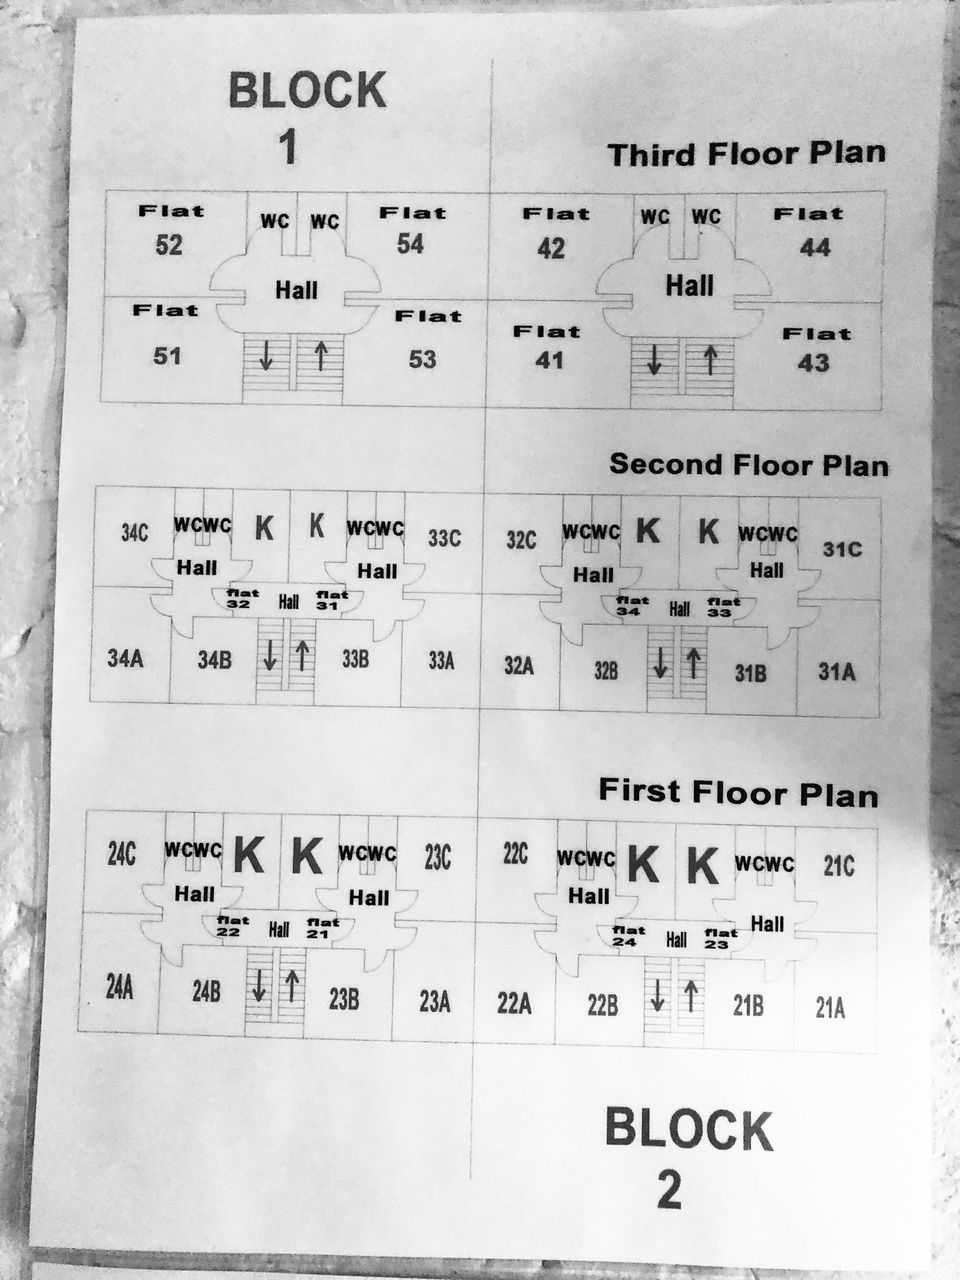 Floor plans in the building where Jankhana lives show how flats on the first and second floor are divided...